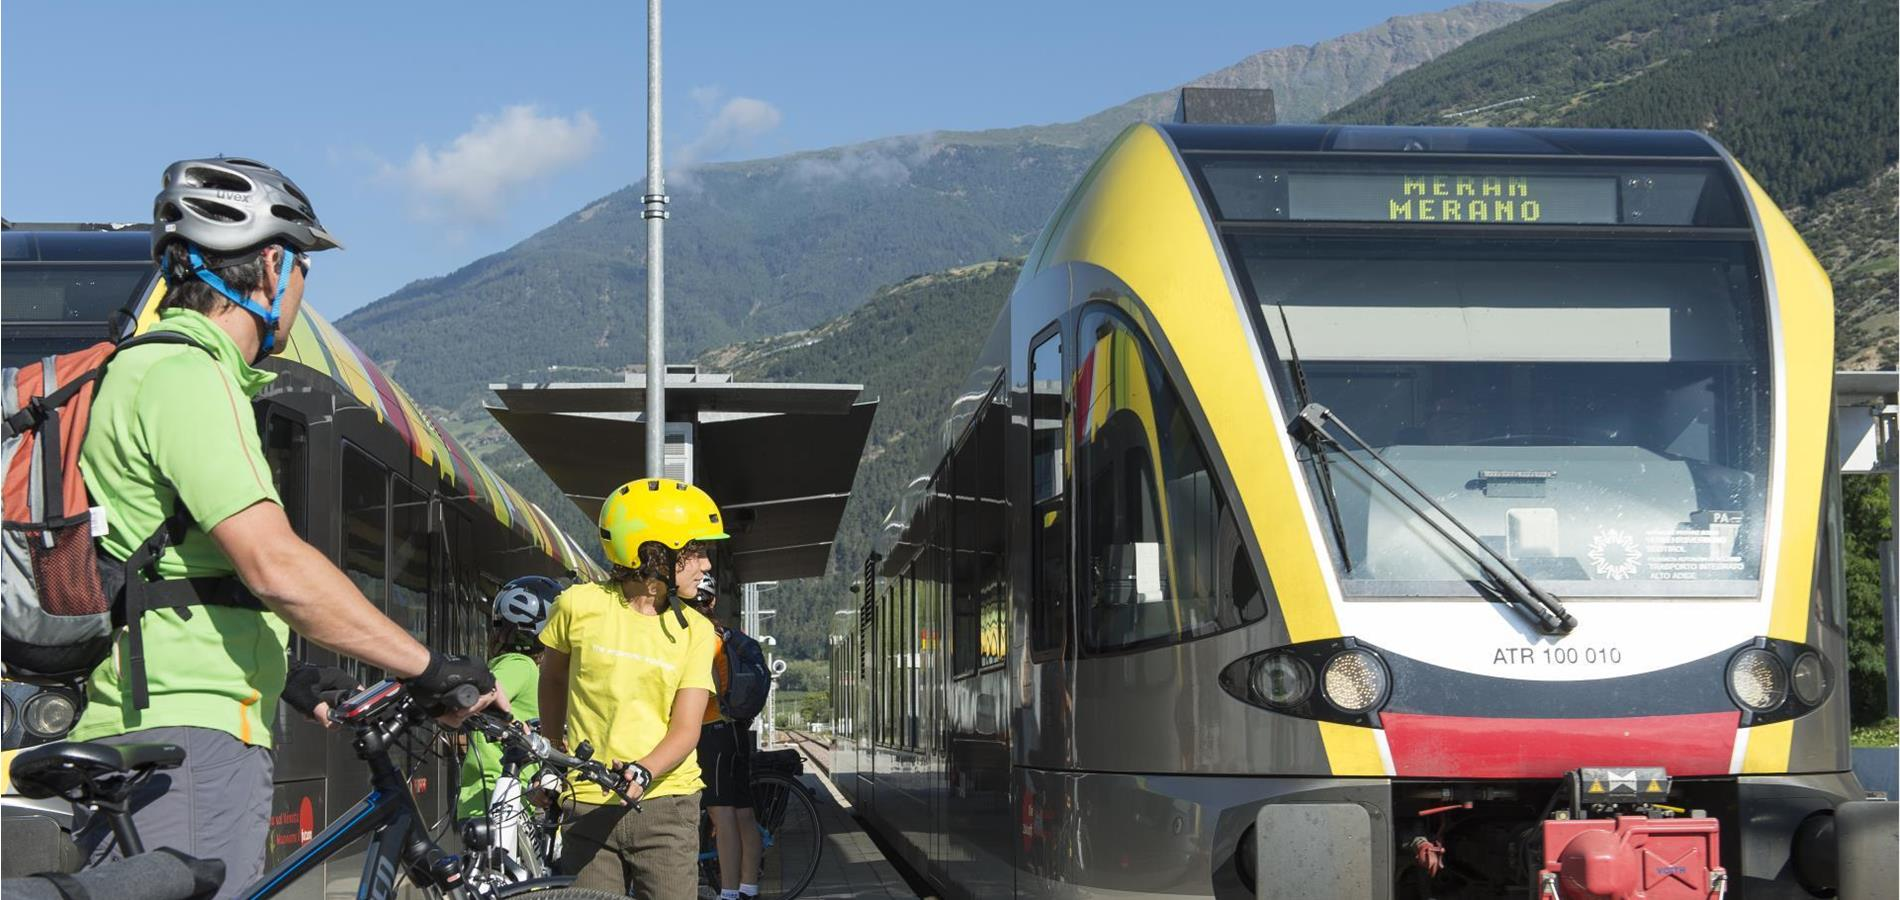 Equipment & Bicycle Rental in Merano and Environs